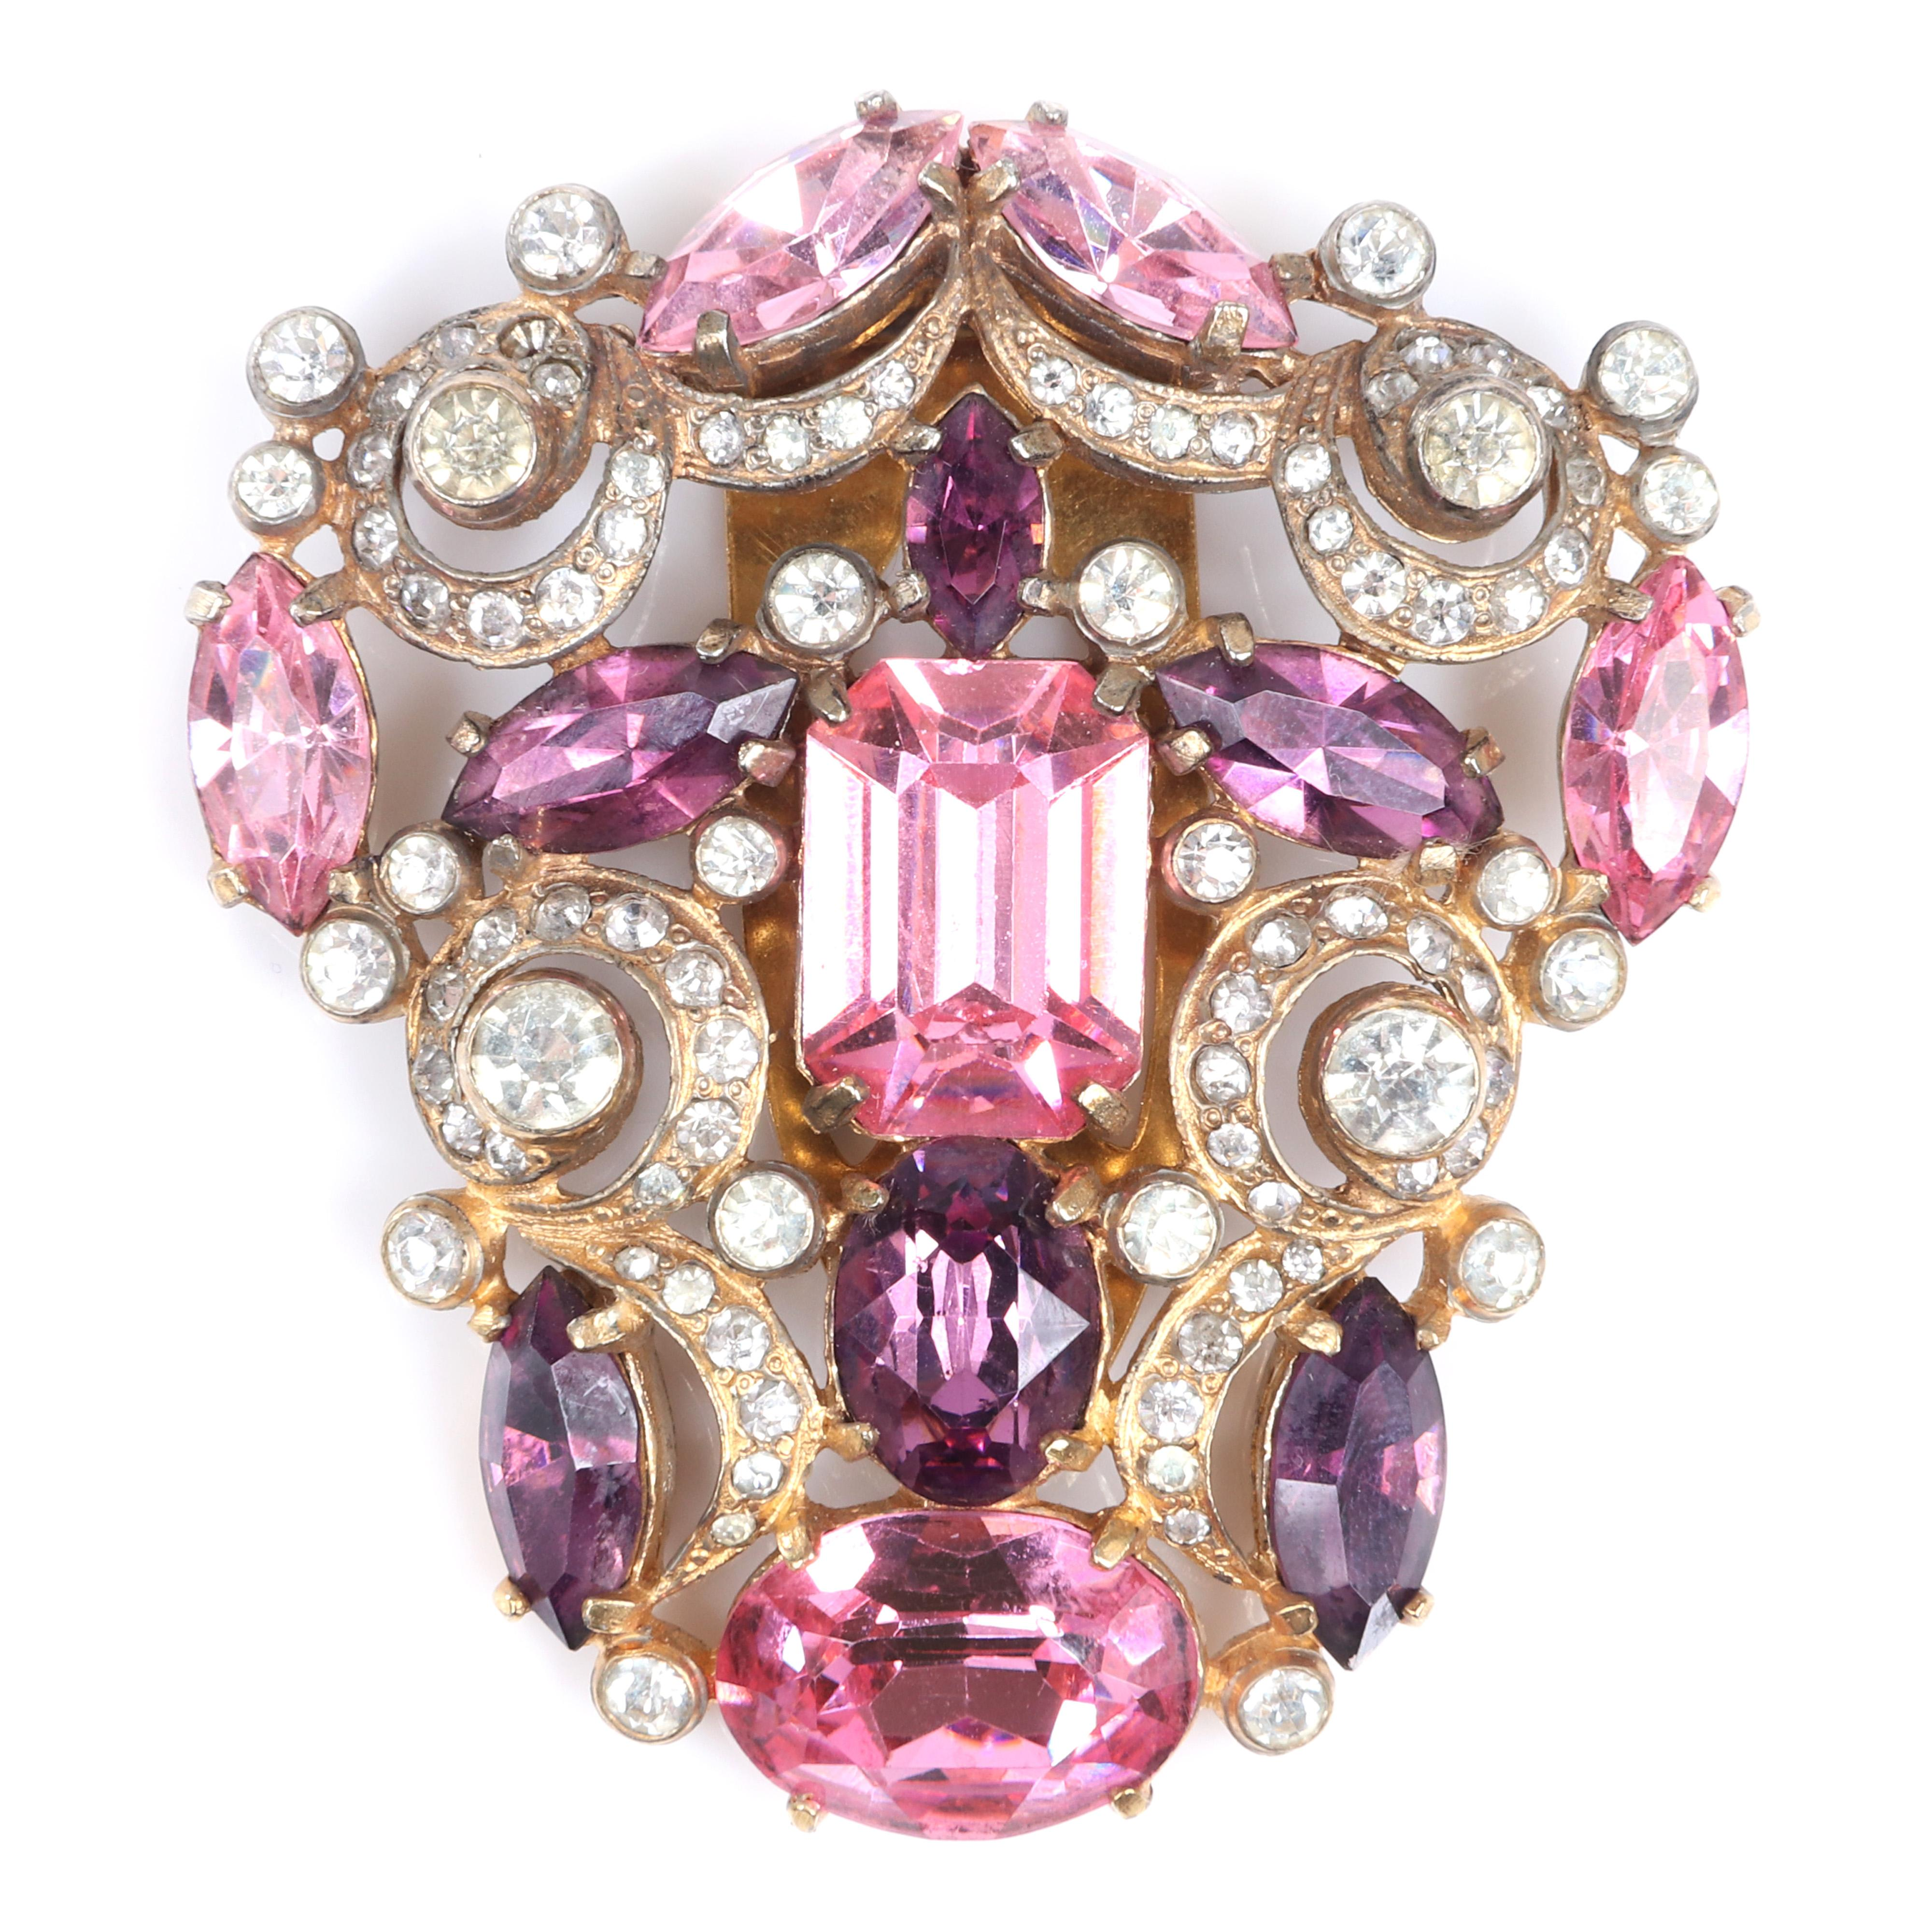 "Eisenberg Original Baroque dress clip with large pink and amethyst faceted crystal jewels, diamante and looping lines of rhinestones in gold washed pot metal, c. 1940s. 2 1/2"" x 2 1/4"""